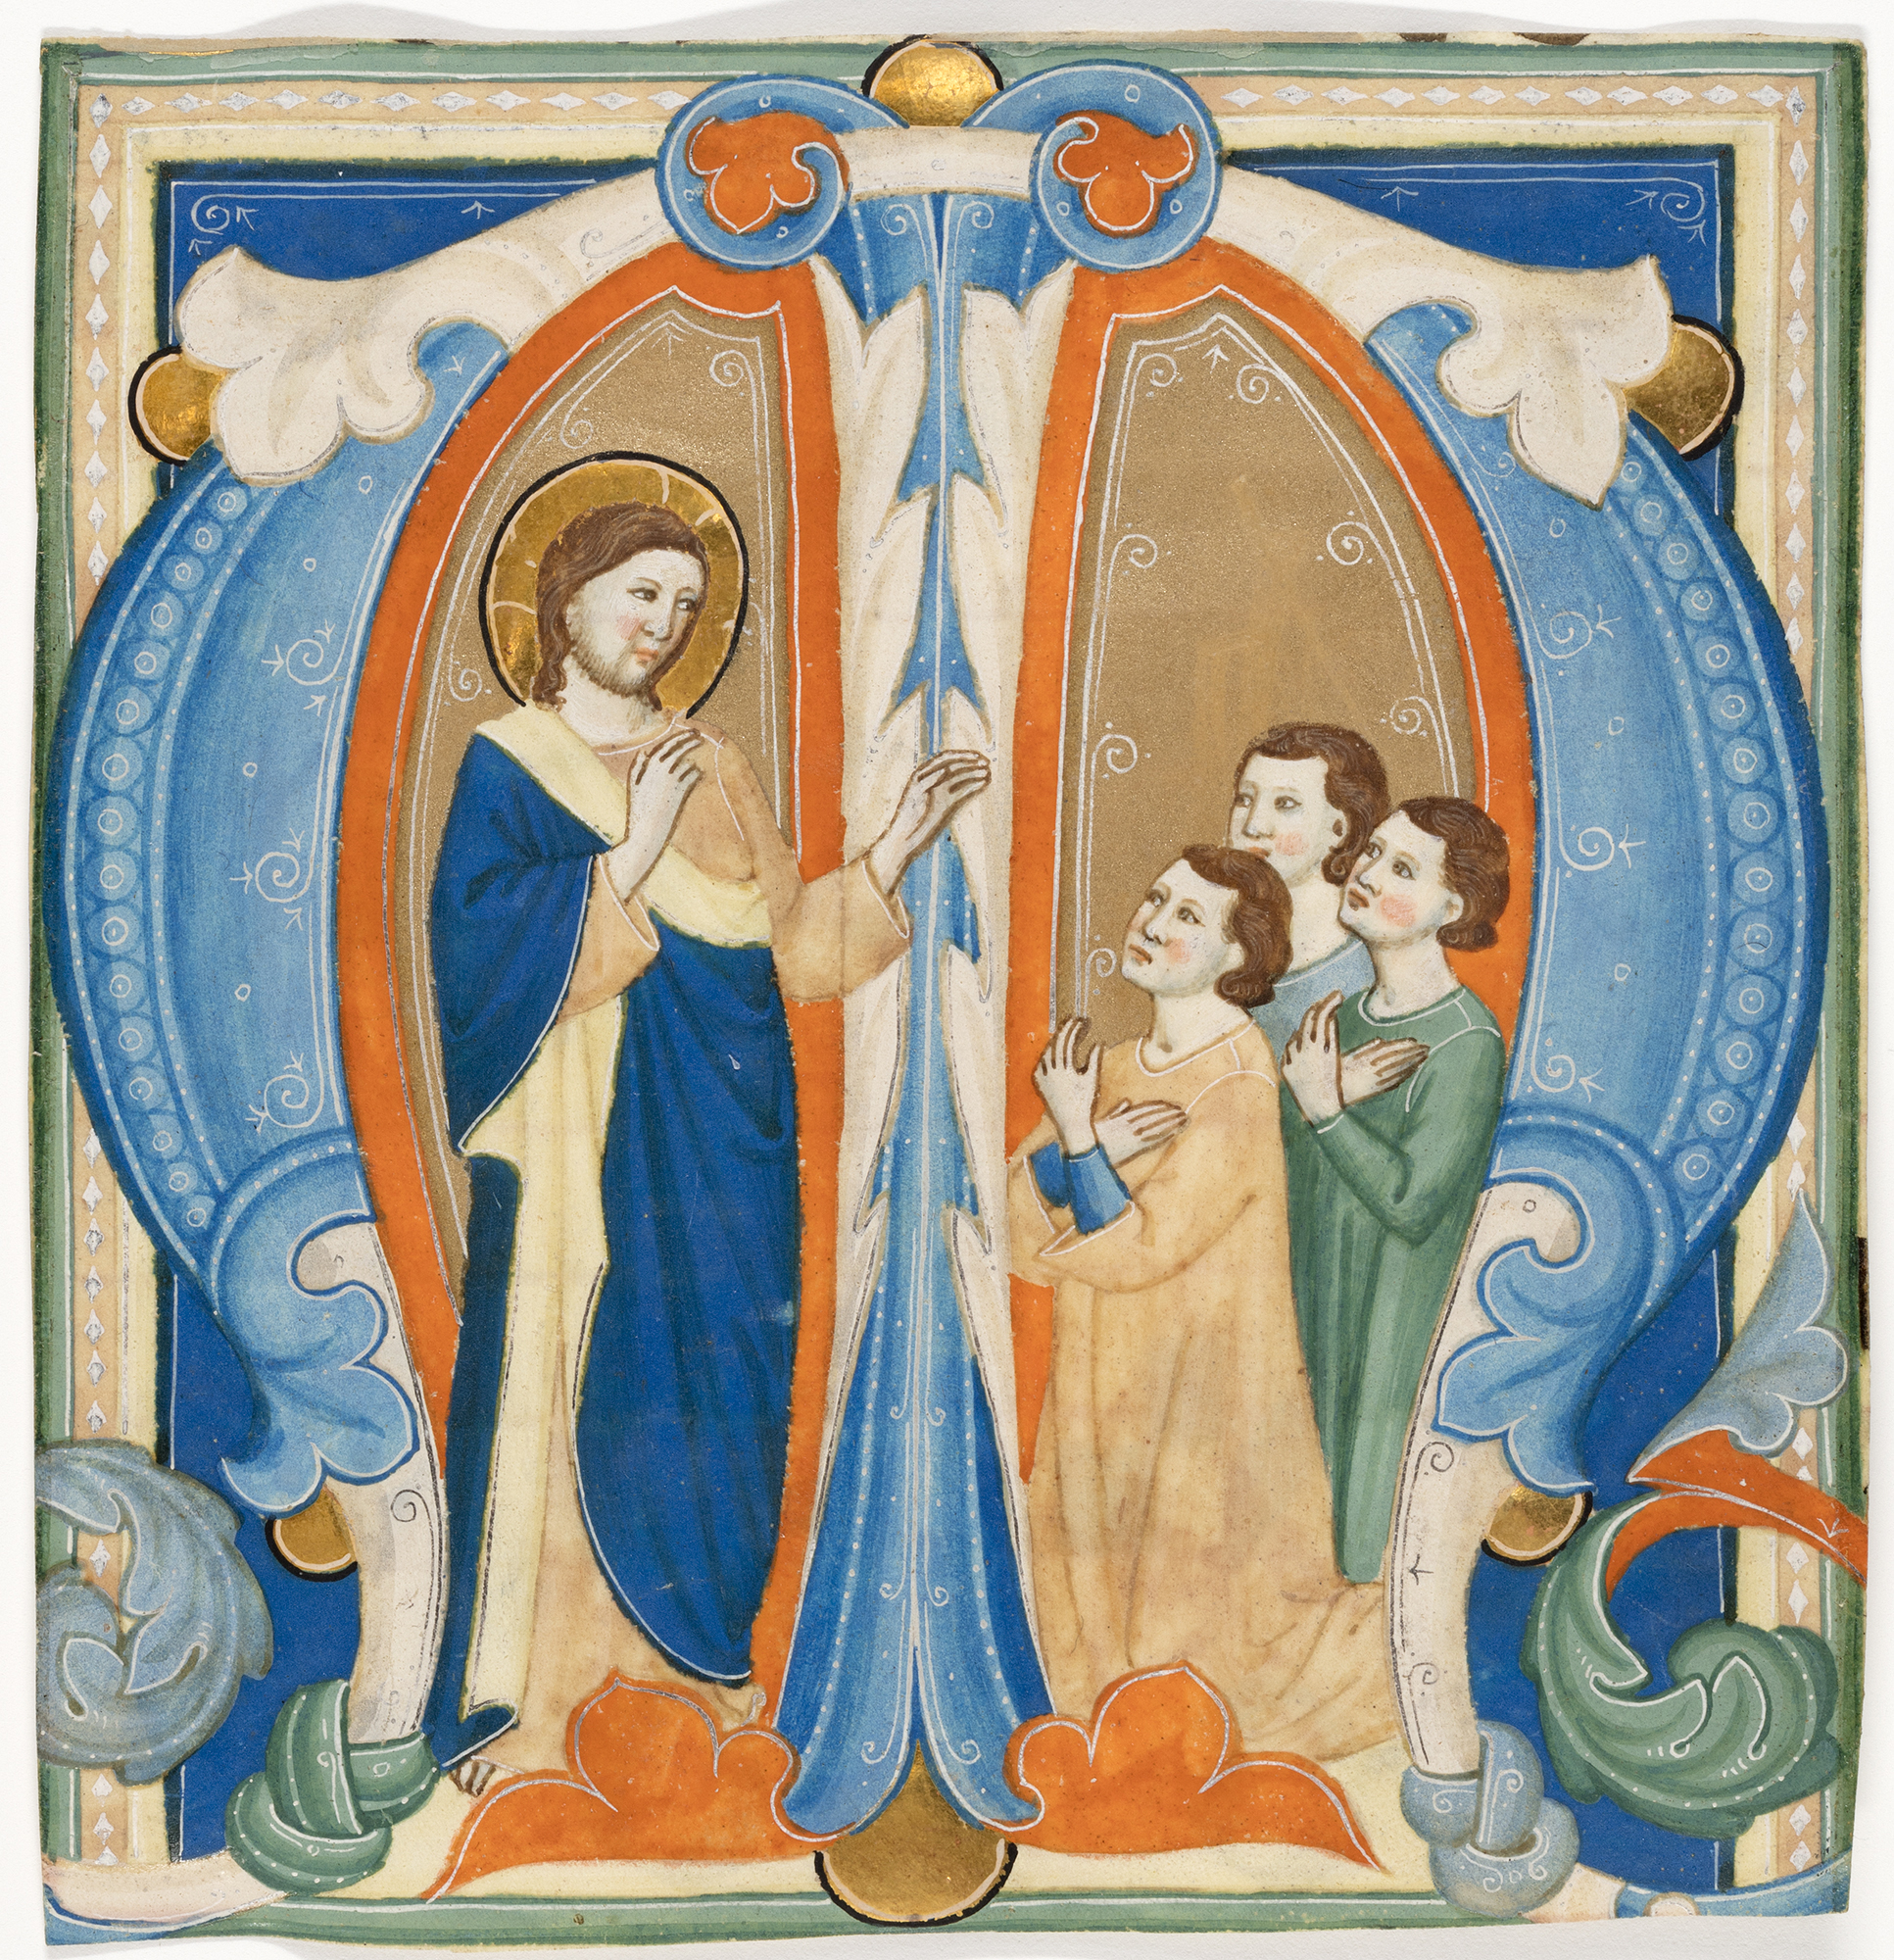 Christ/'s Blessing Art Print Illuminated Manuscripts